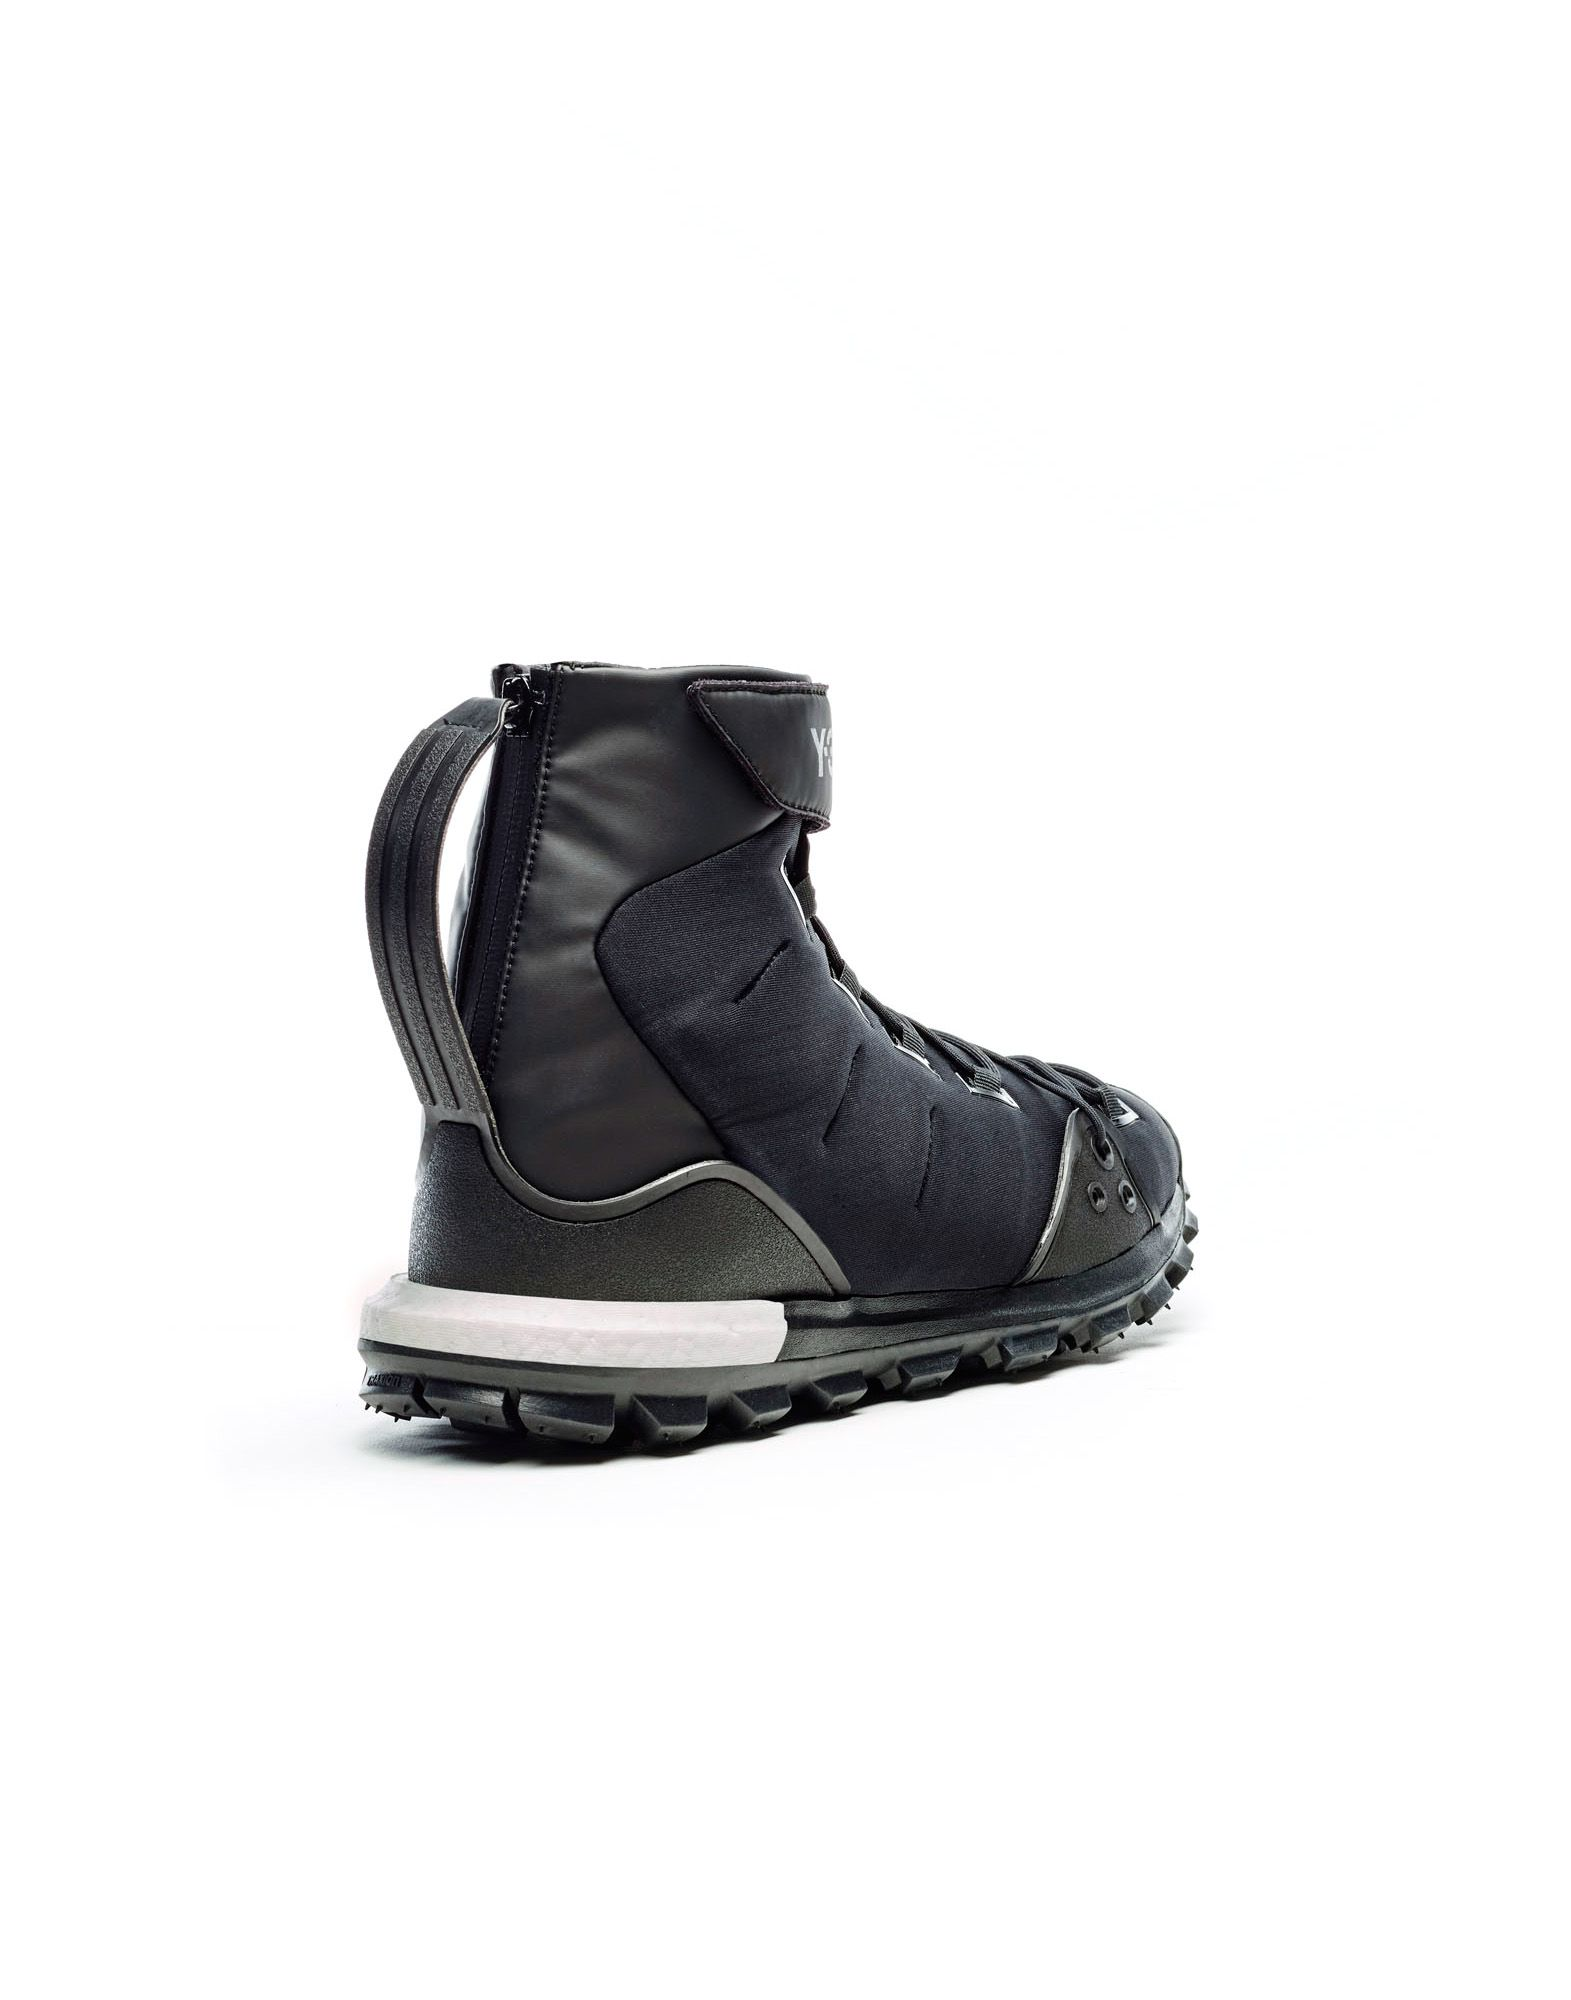 best service 9d459 83c73 Y 3 SPORT TRAIL X High Top Sneakers   Adidas Y-3 Official Site